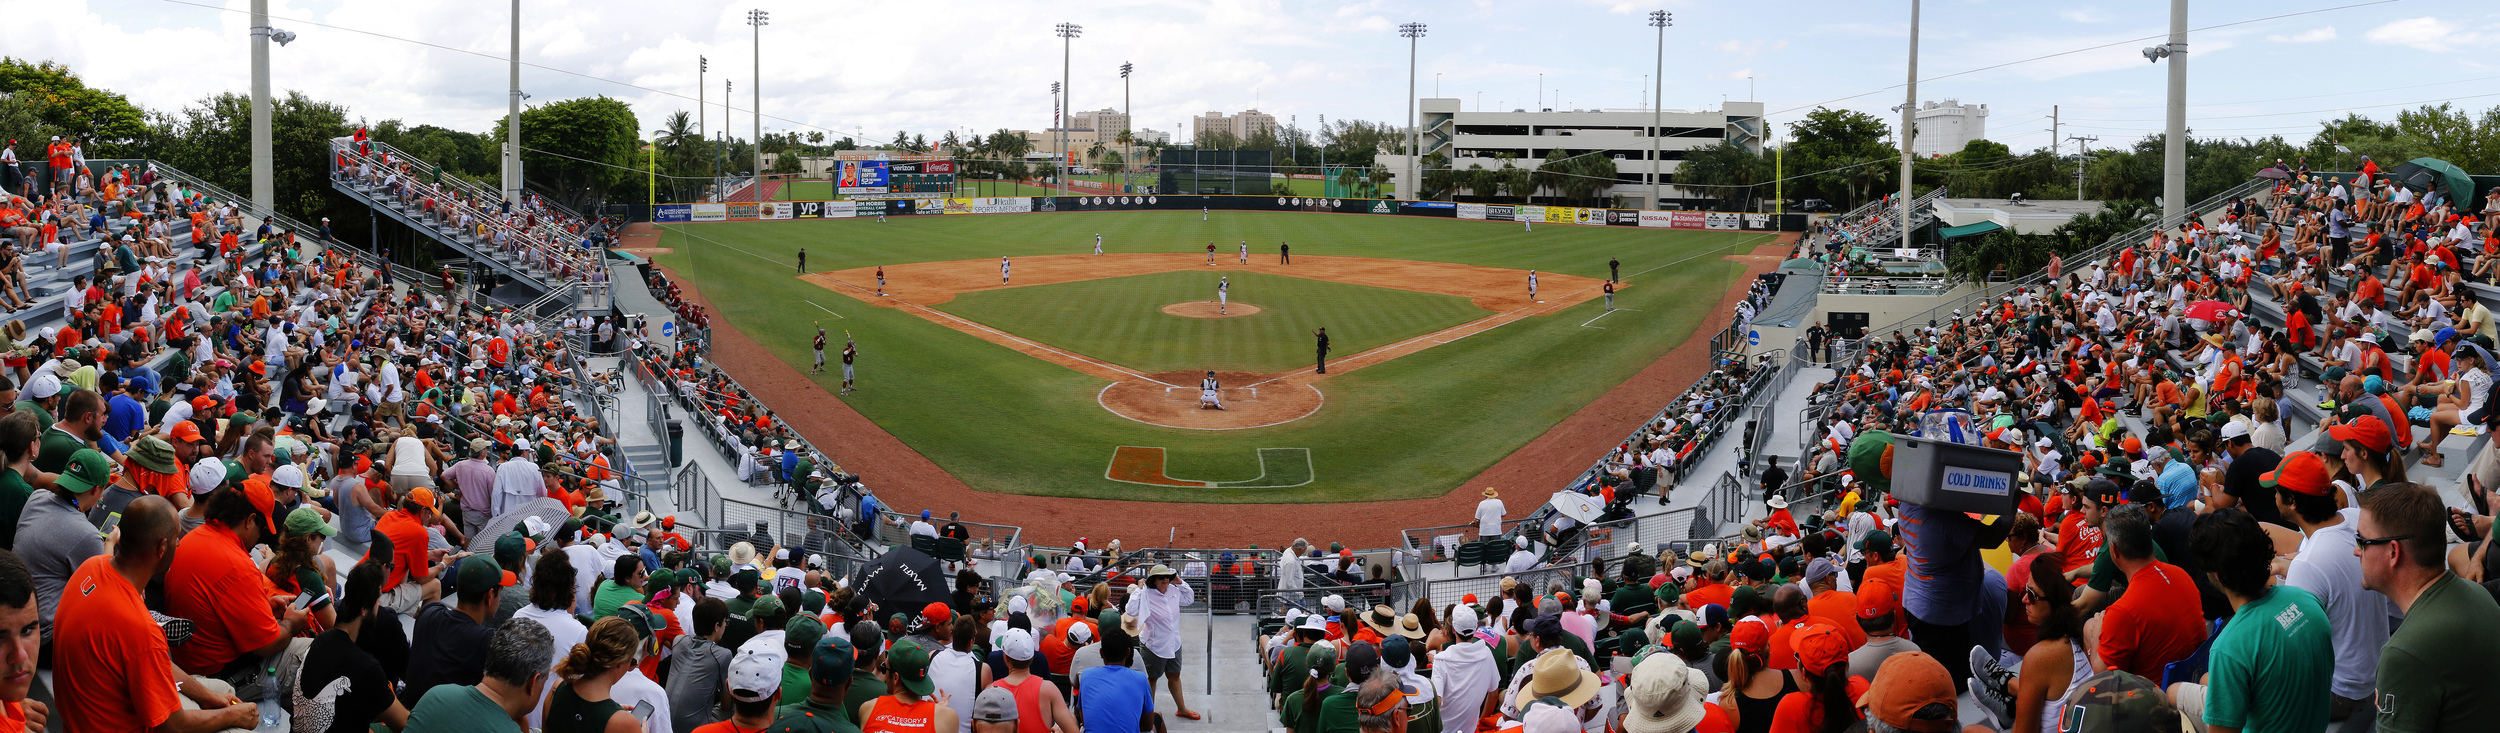 Alex Rodriguez Stadium - University of Miami